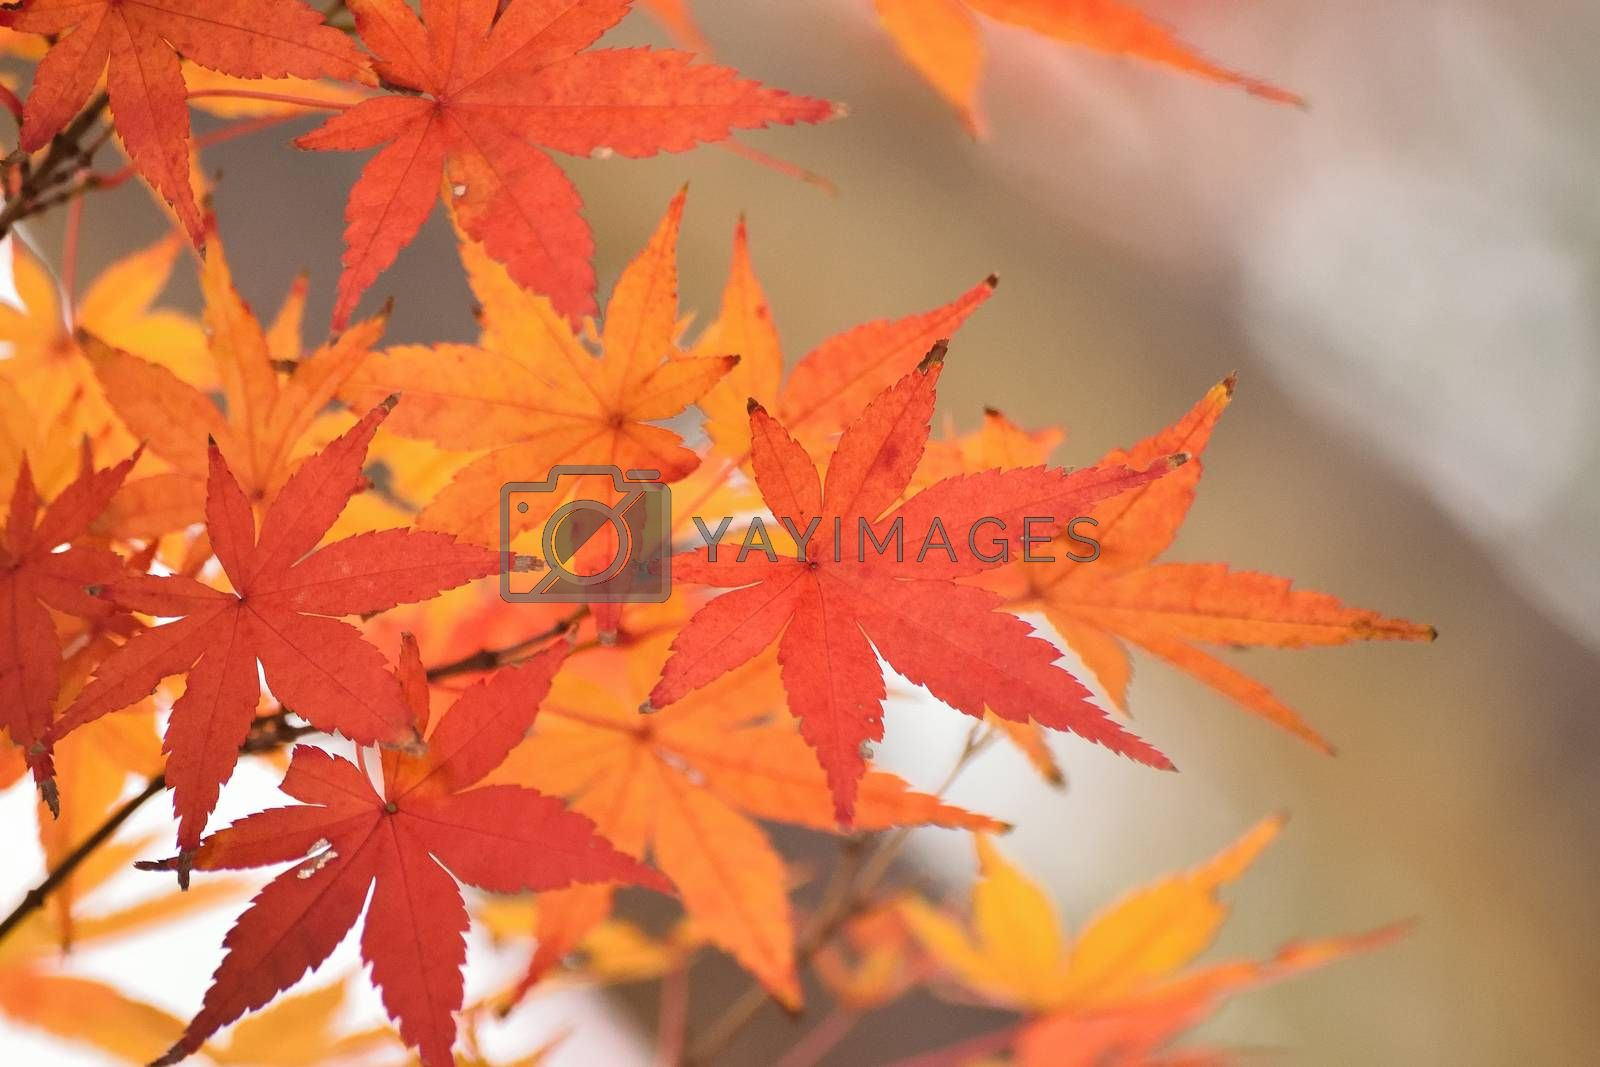 Vibrant Japanese Autumn Maple leaves Landscape with blurred background in horizontal frame